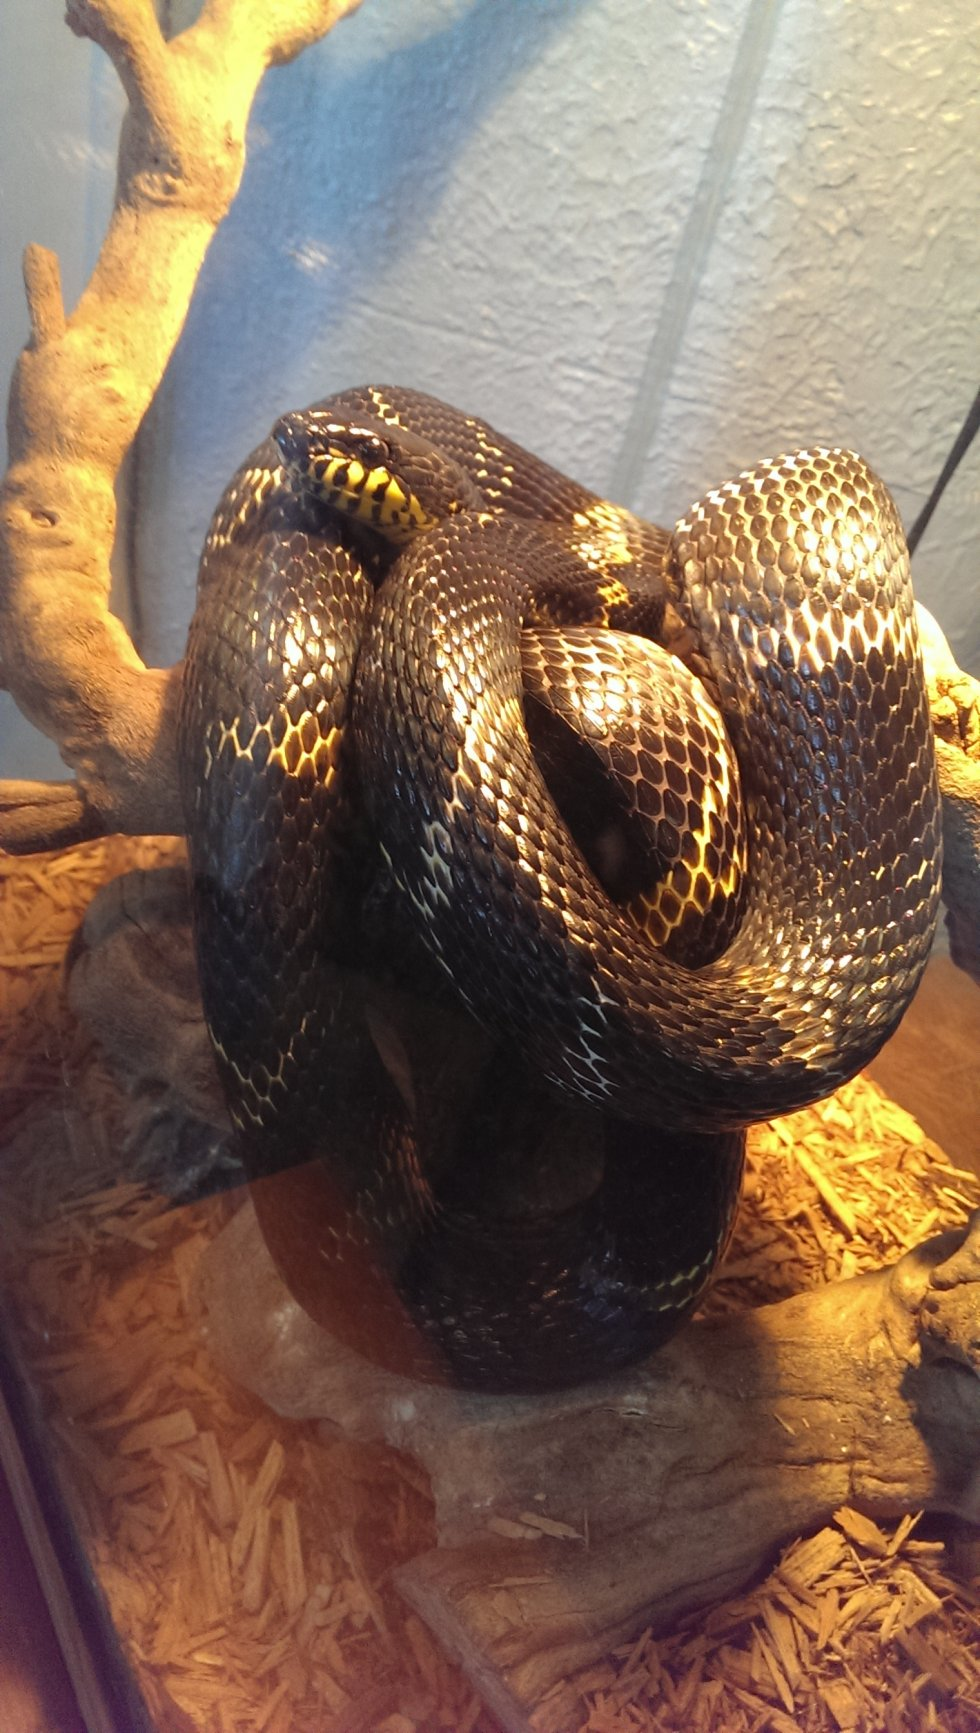 Male Russian Rat Snake